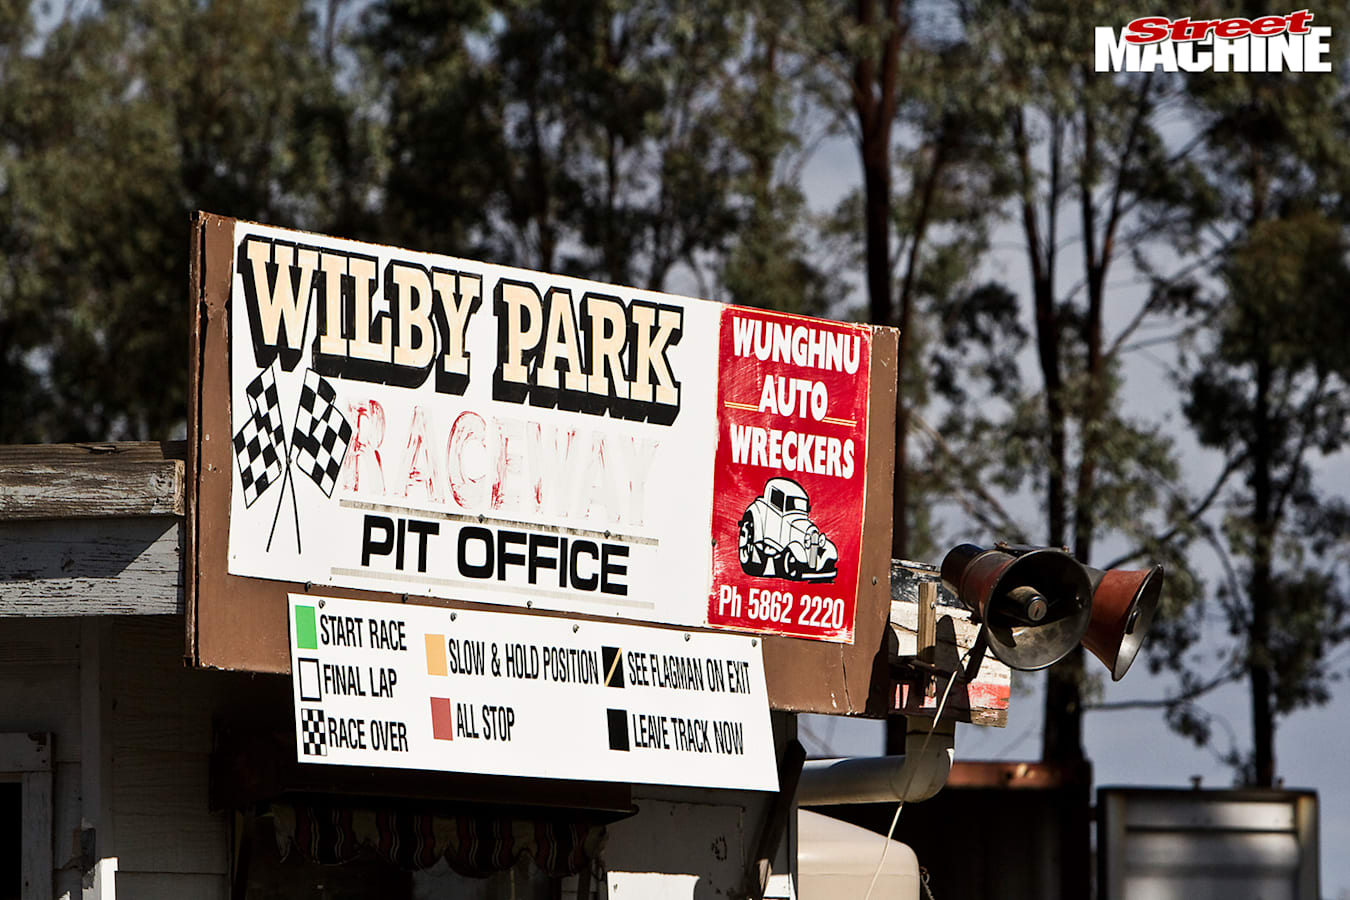 Wilby -park -17